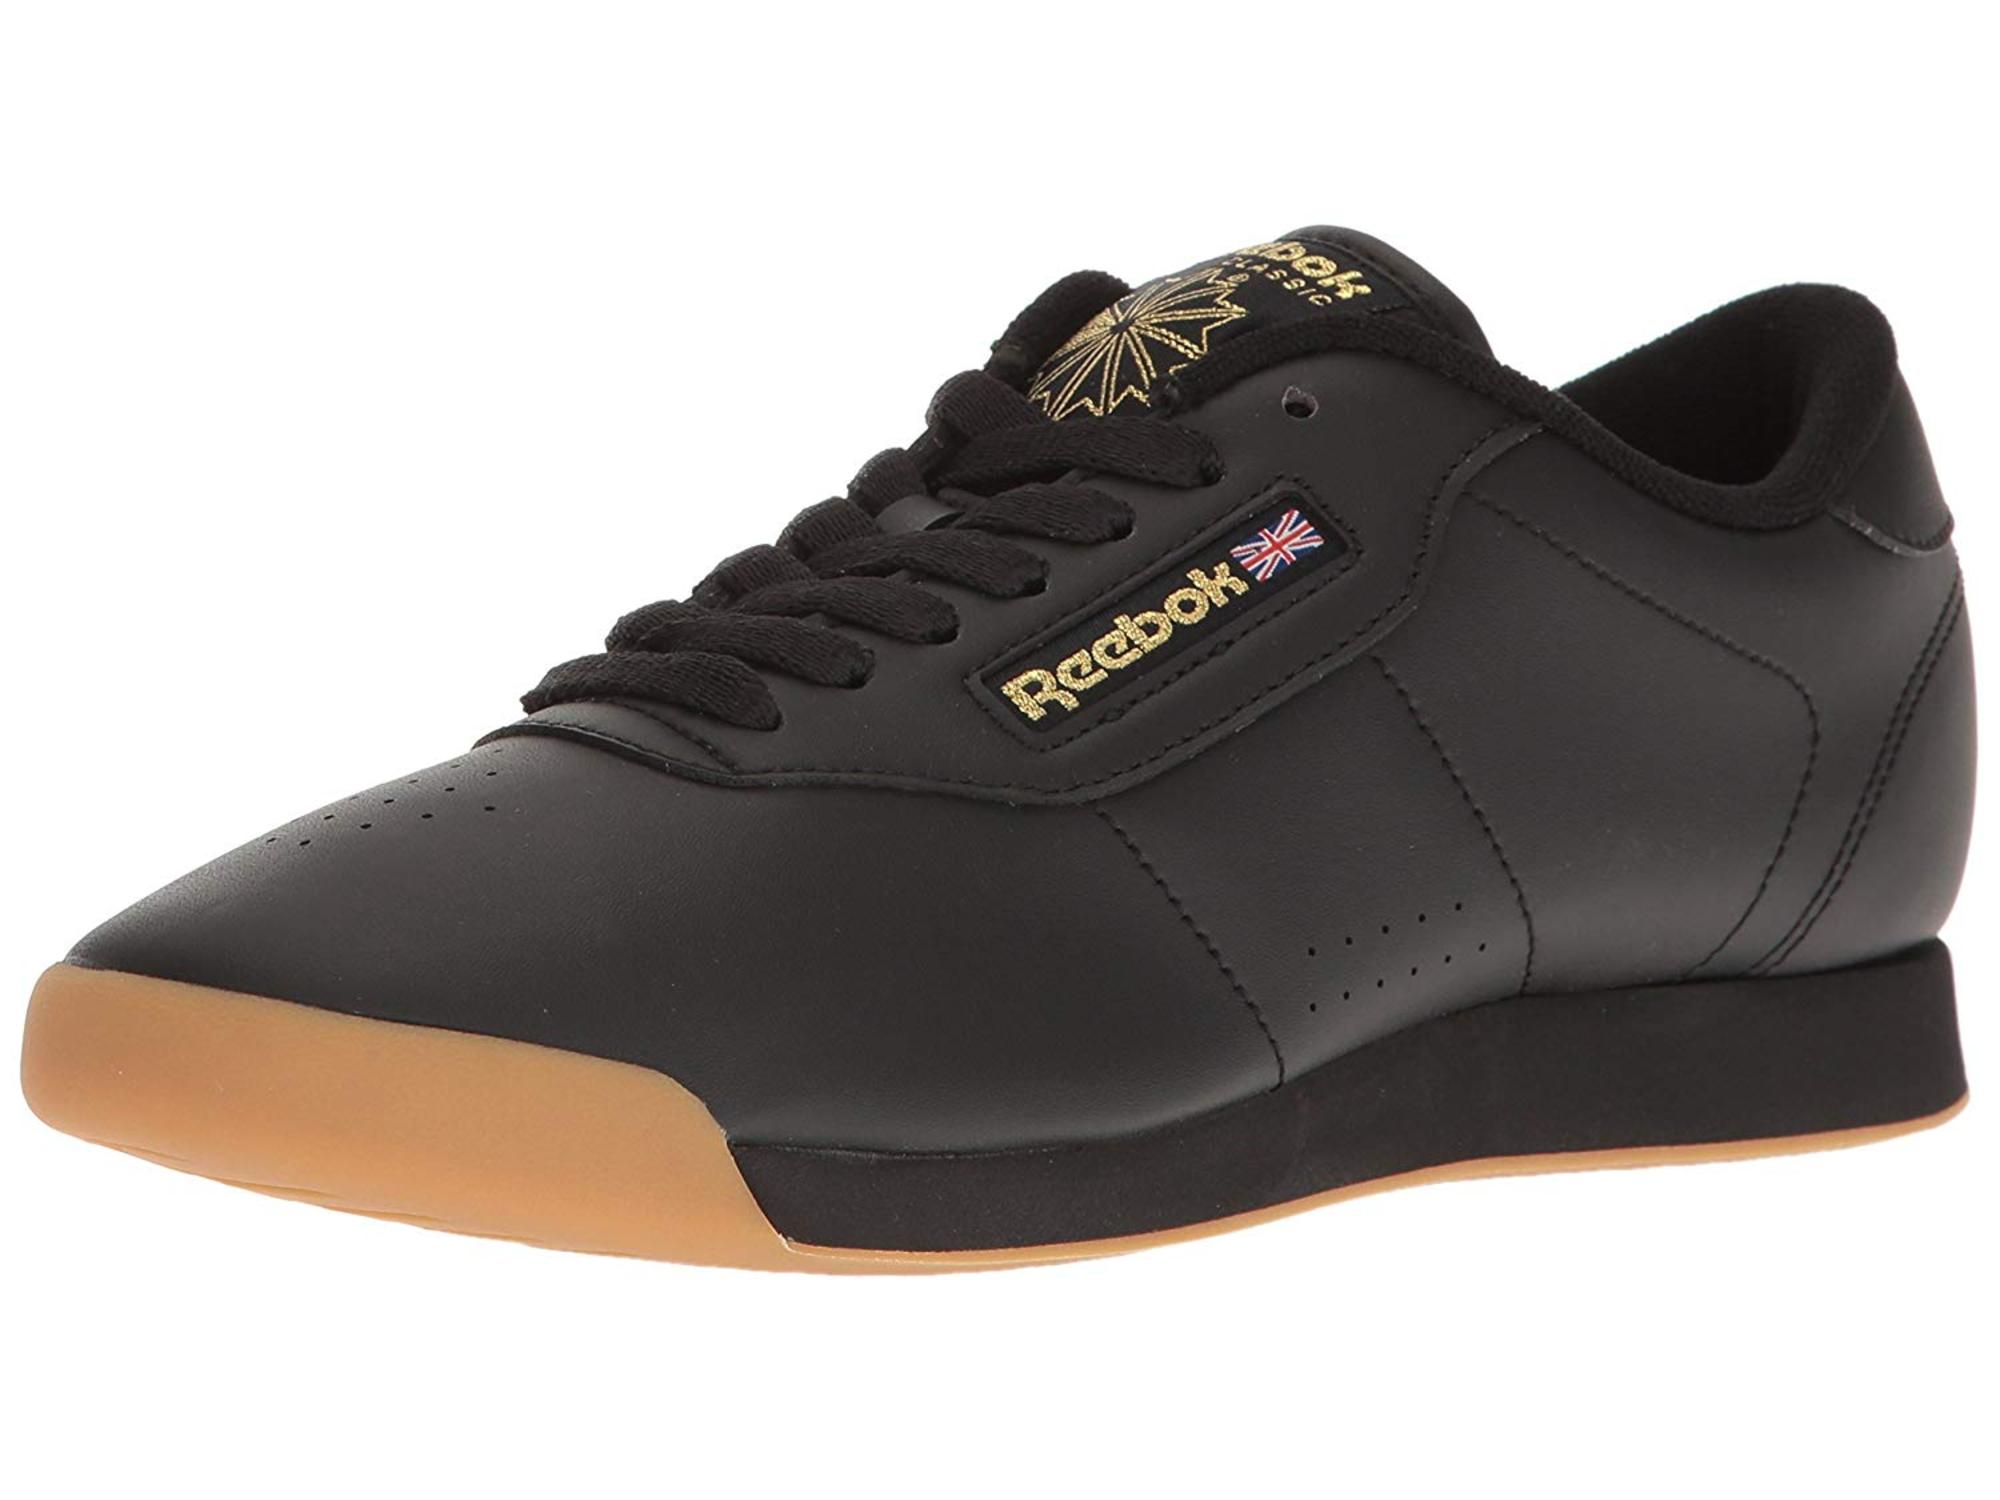 03796916c16 Reebok - Reebok Womens Princess Leather Low Top Lace Up Fashion Sneakers -  Walmart.com